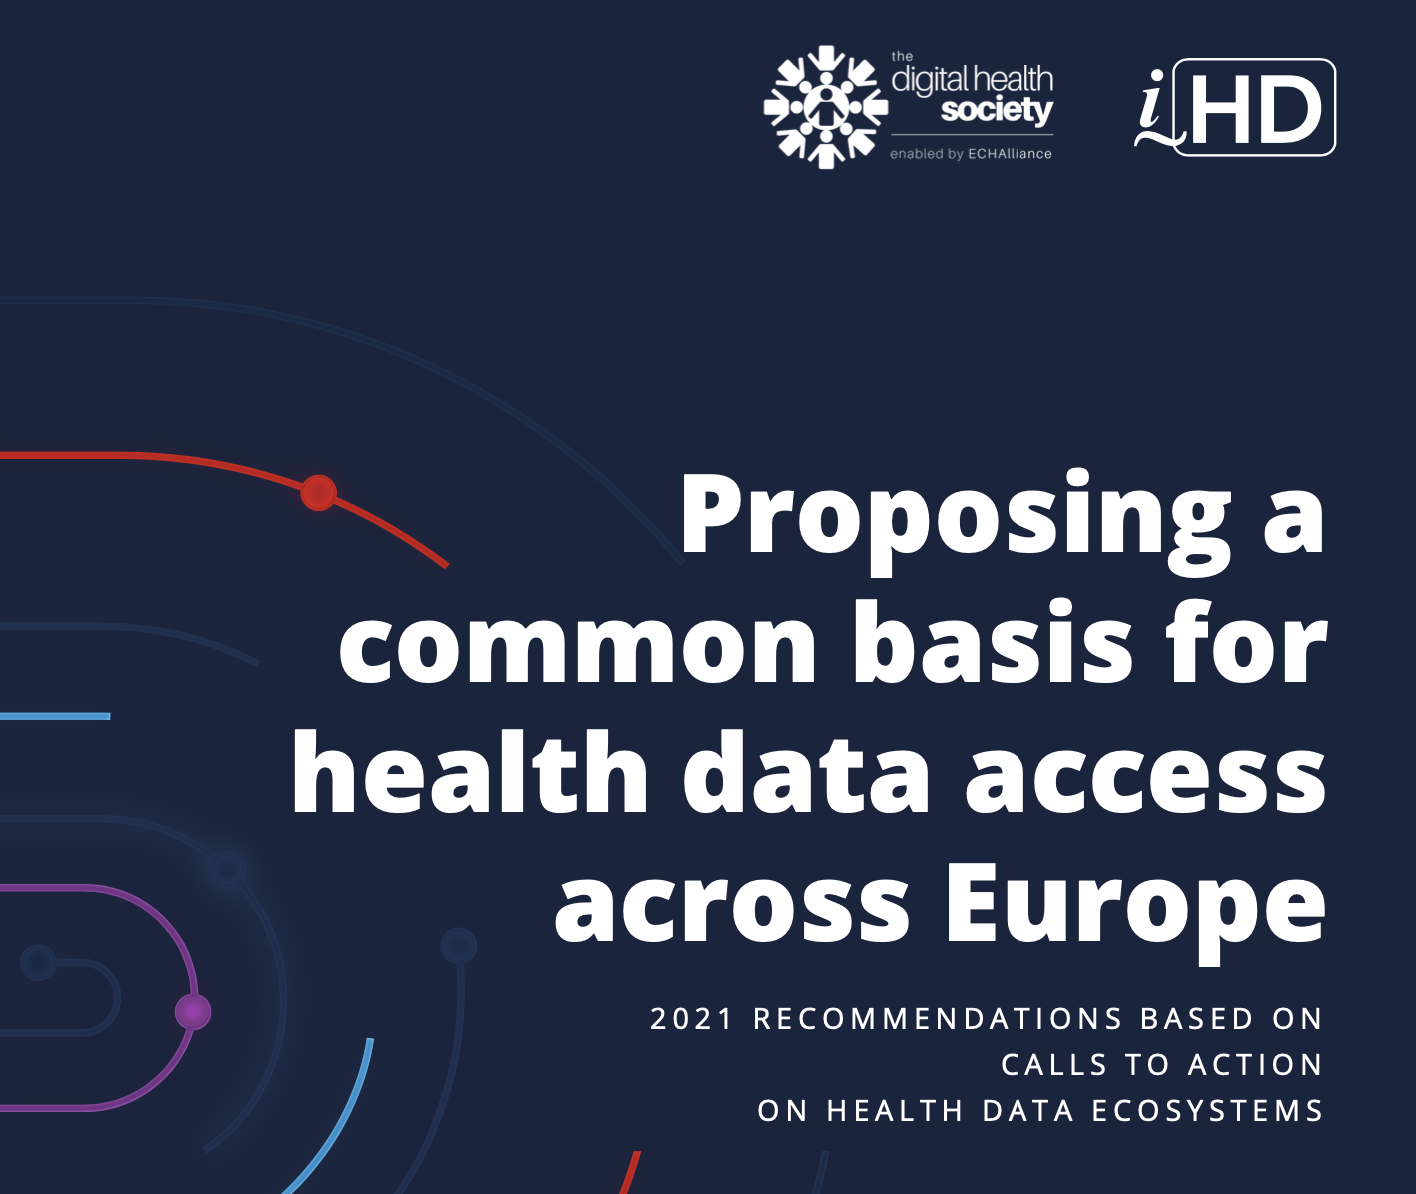 Proposing a common basis for health data access across Europe